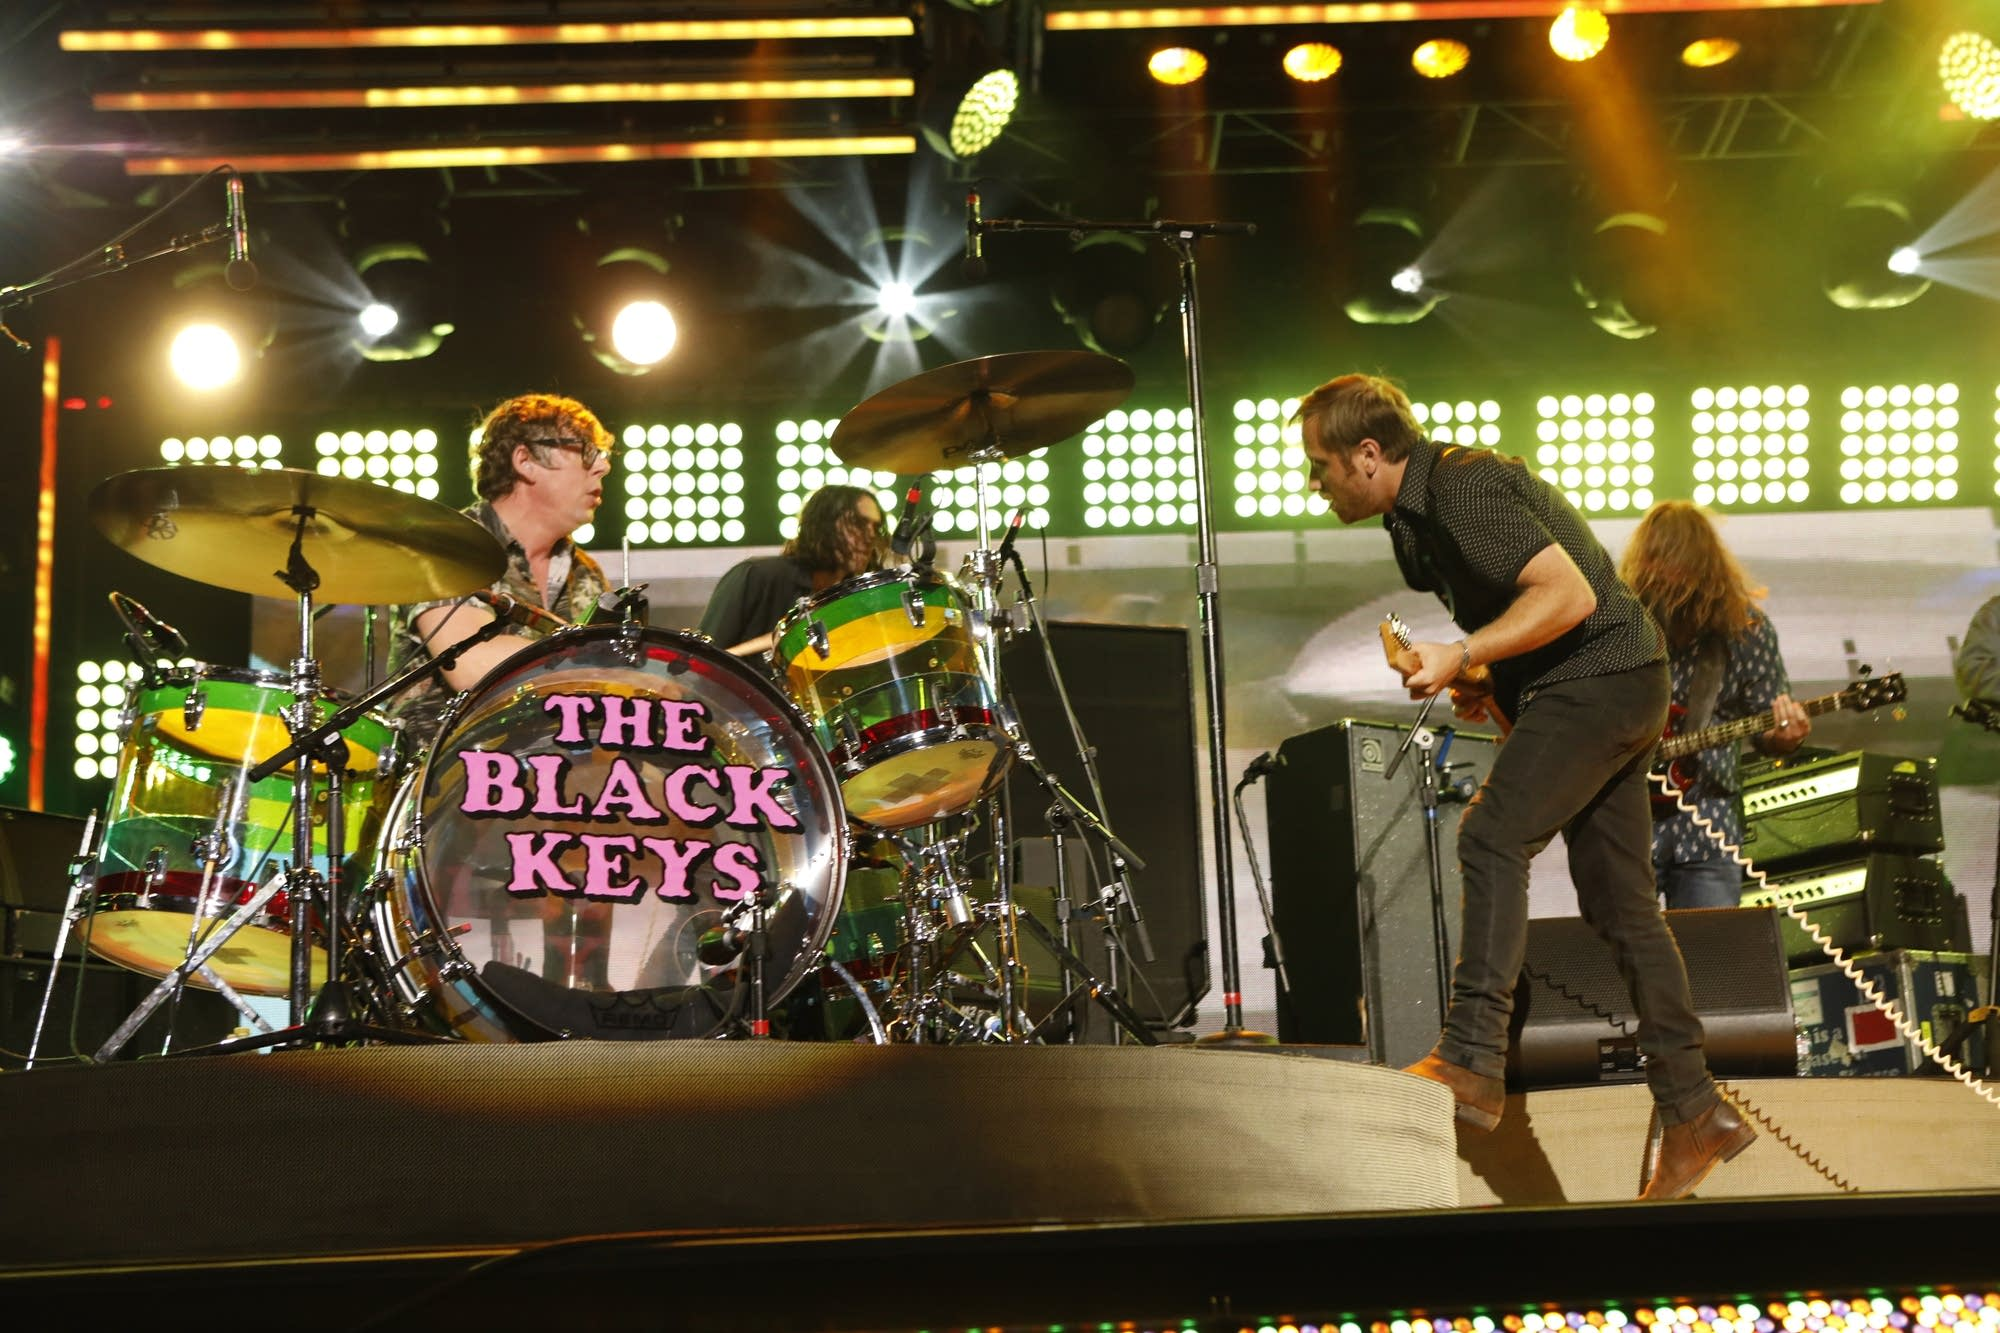 The Black Keys perform on 'Jimmy Kimmel Live!'